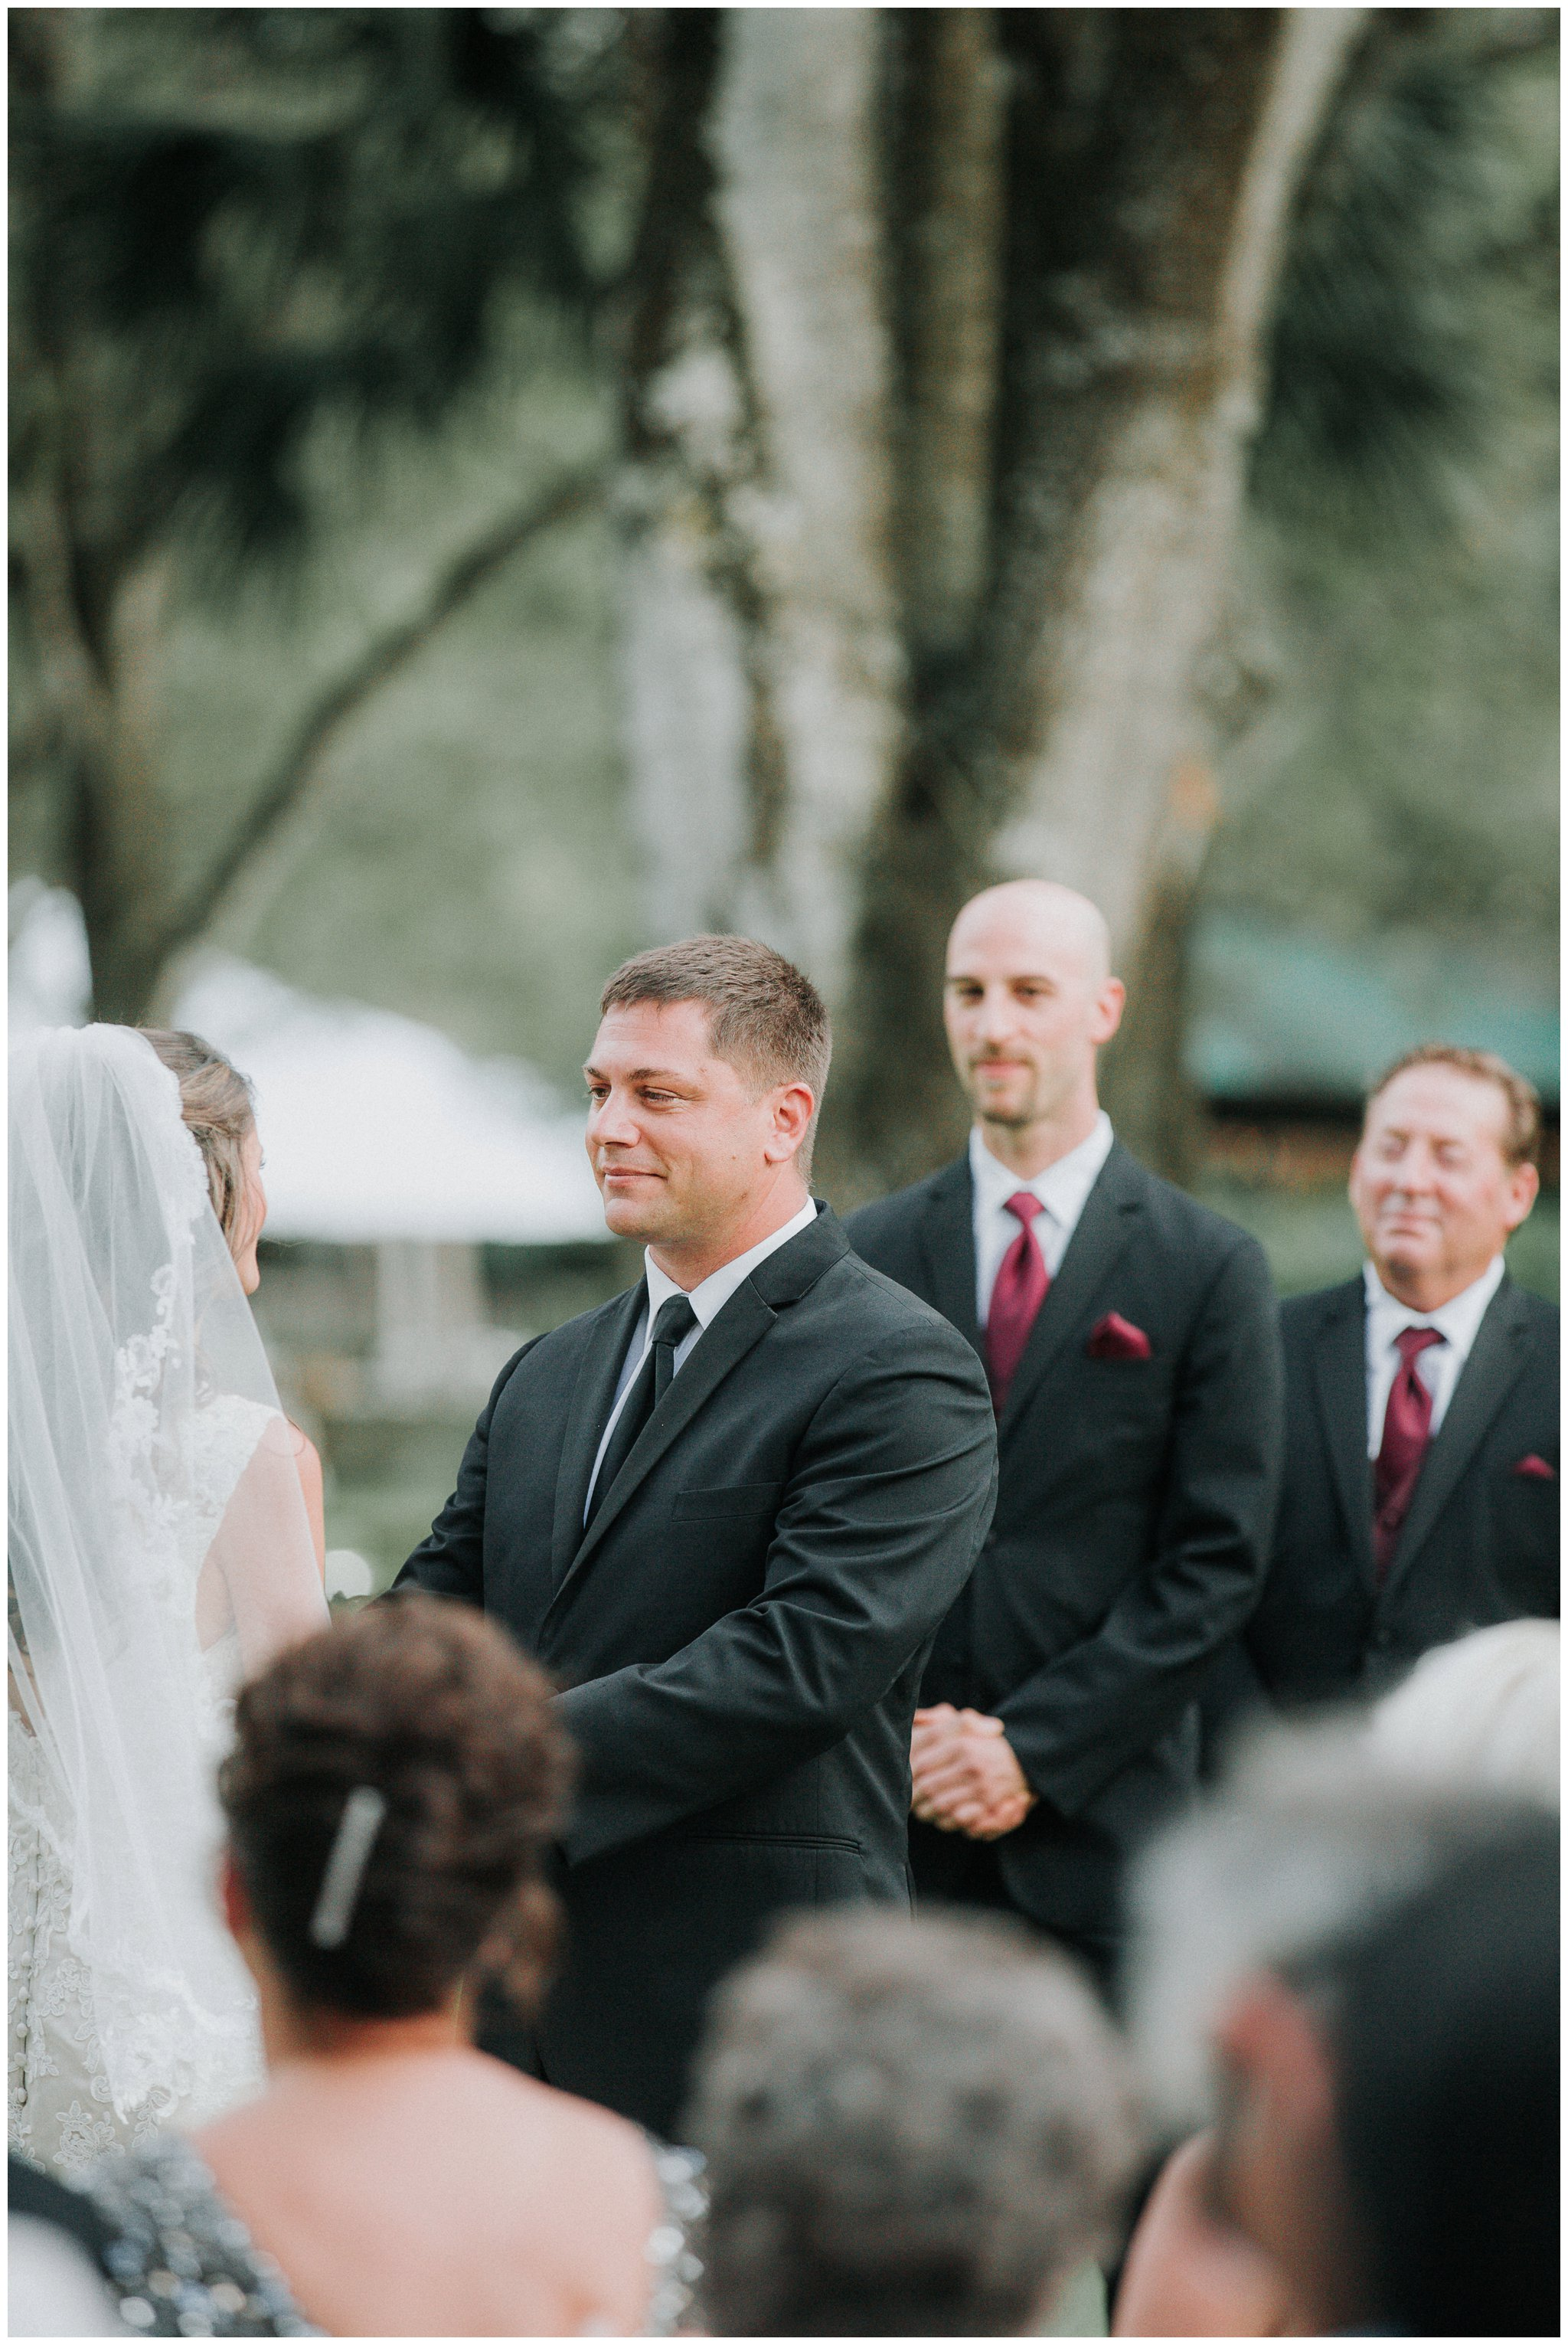 Nicole and Jimmy-BMR Stables Wedding-kimberly smith photography_0041.jpg